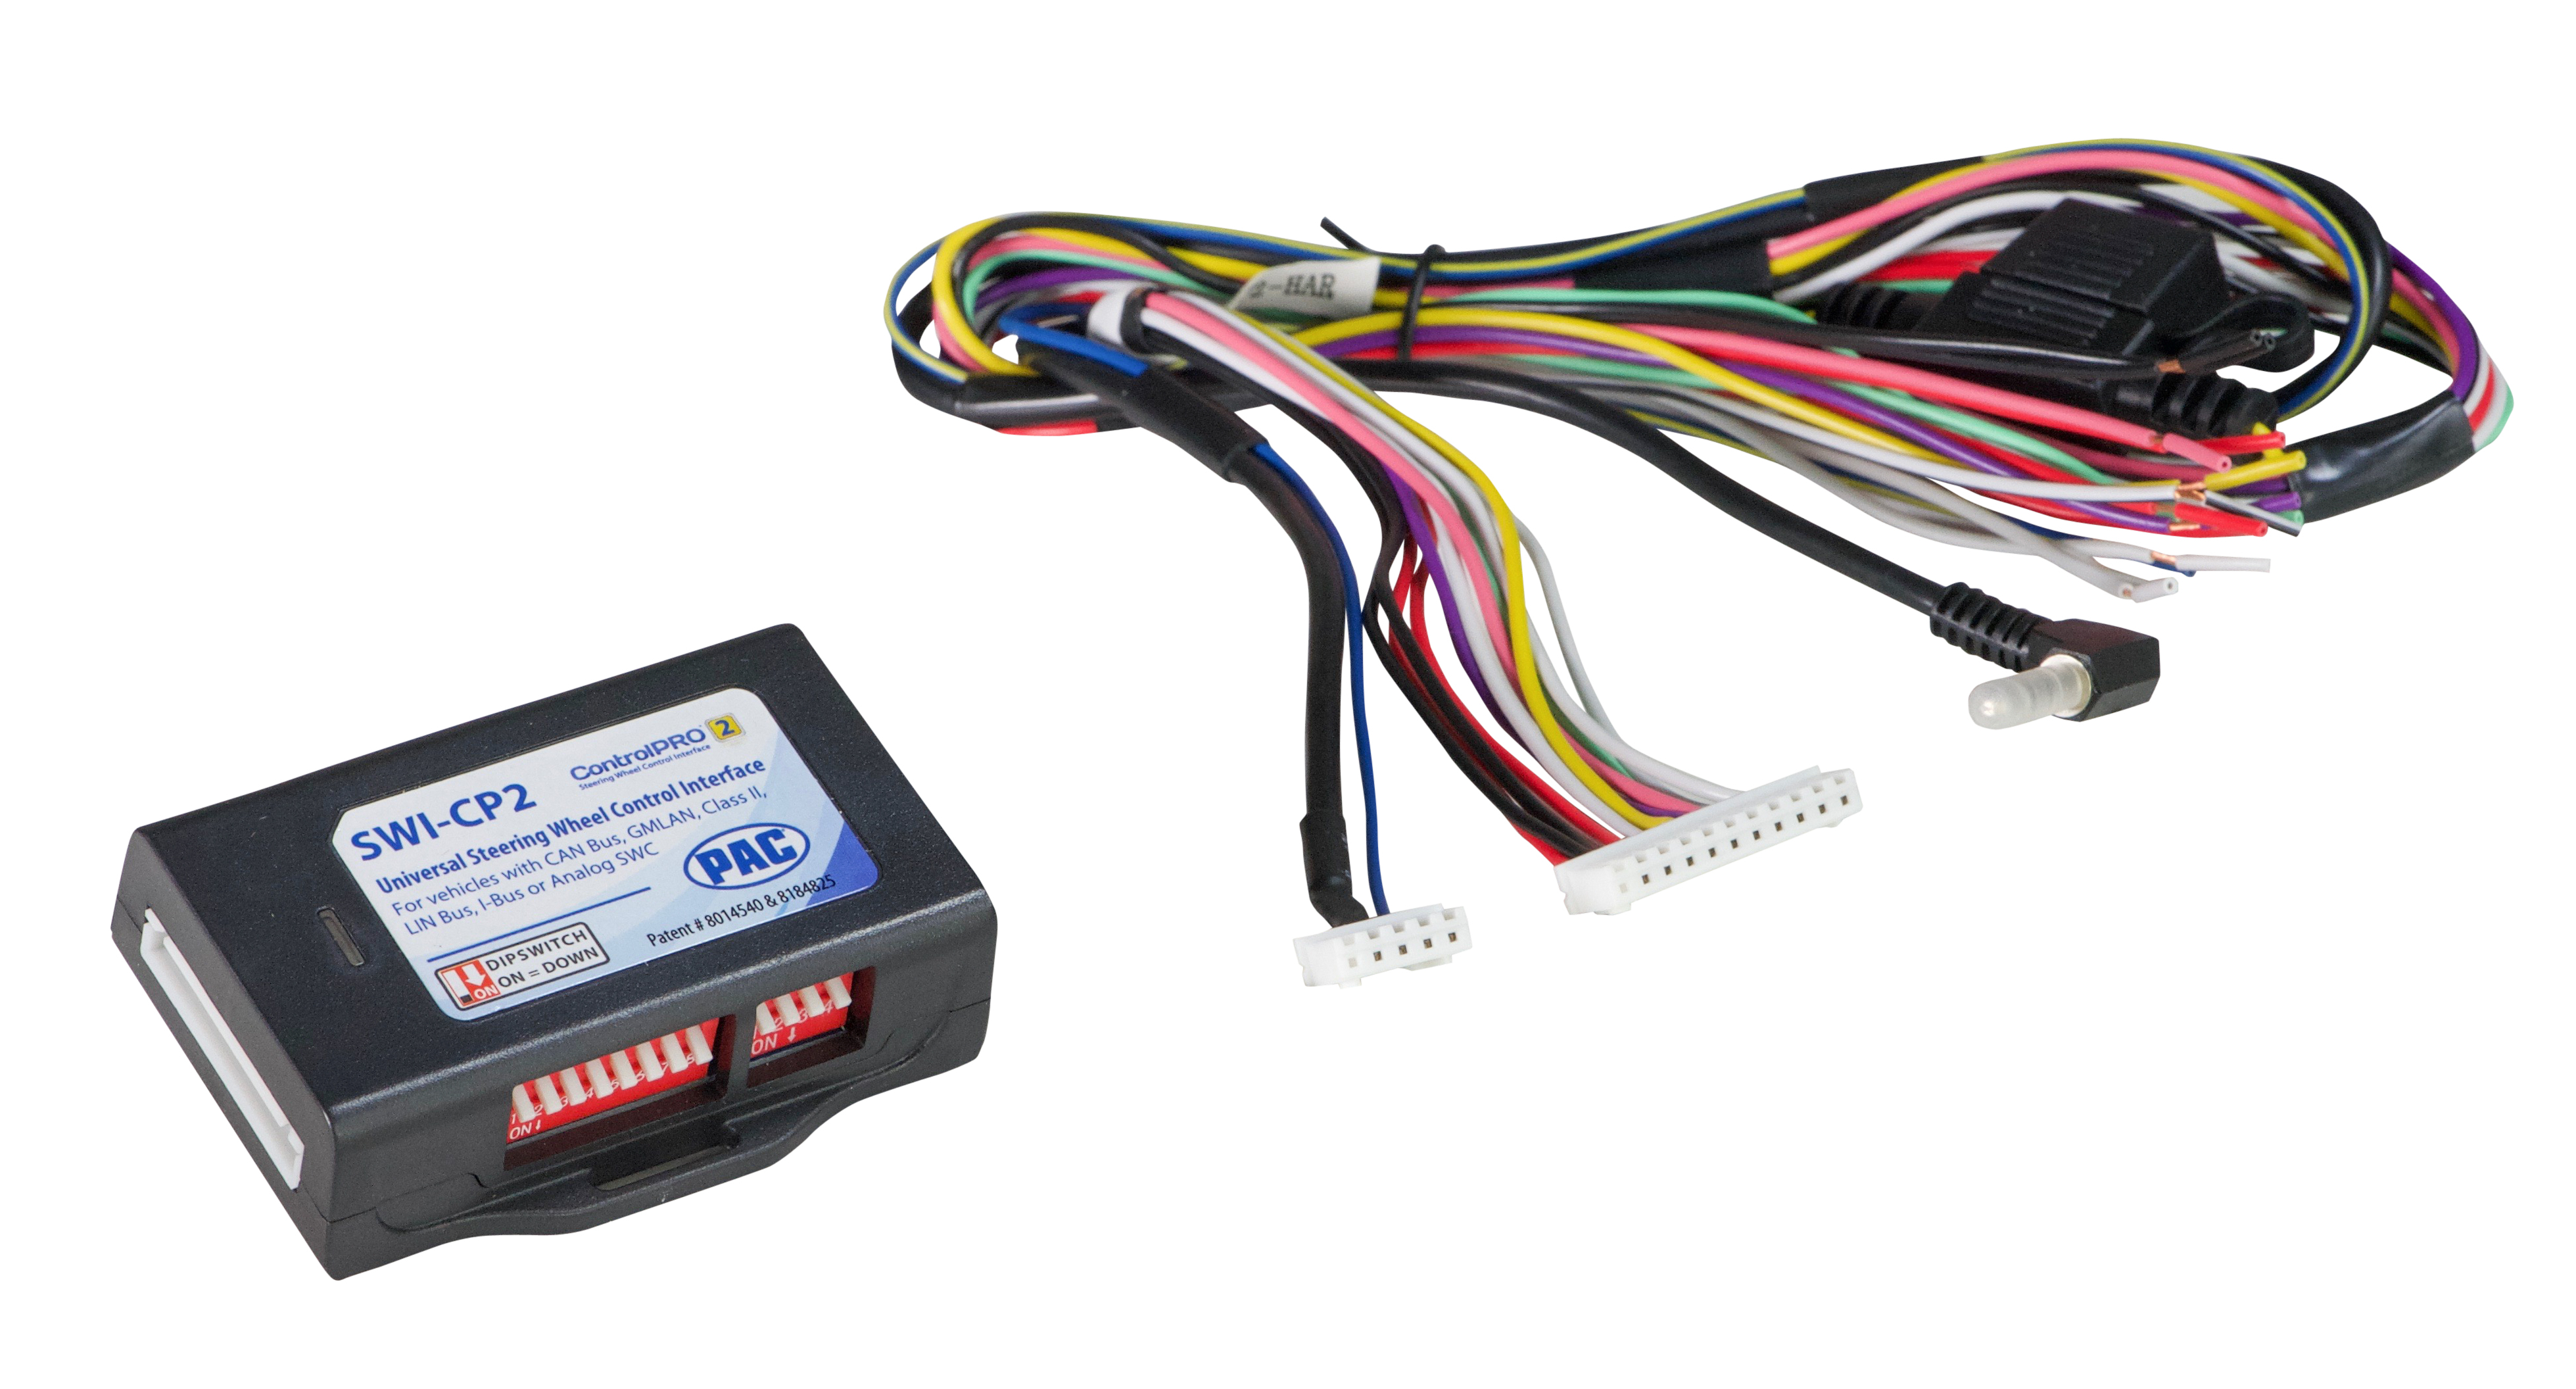 Controlpro2 - Pac - Wiring Diagram Converting 16 Pin Data Connection For 2010 Vw To Usb Connection For Pc